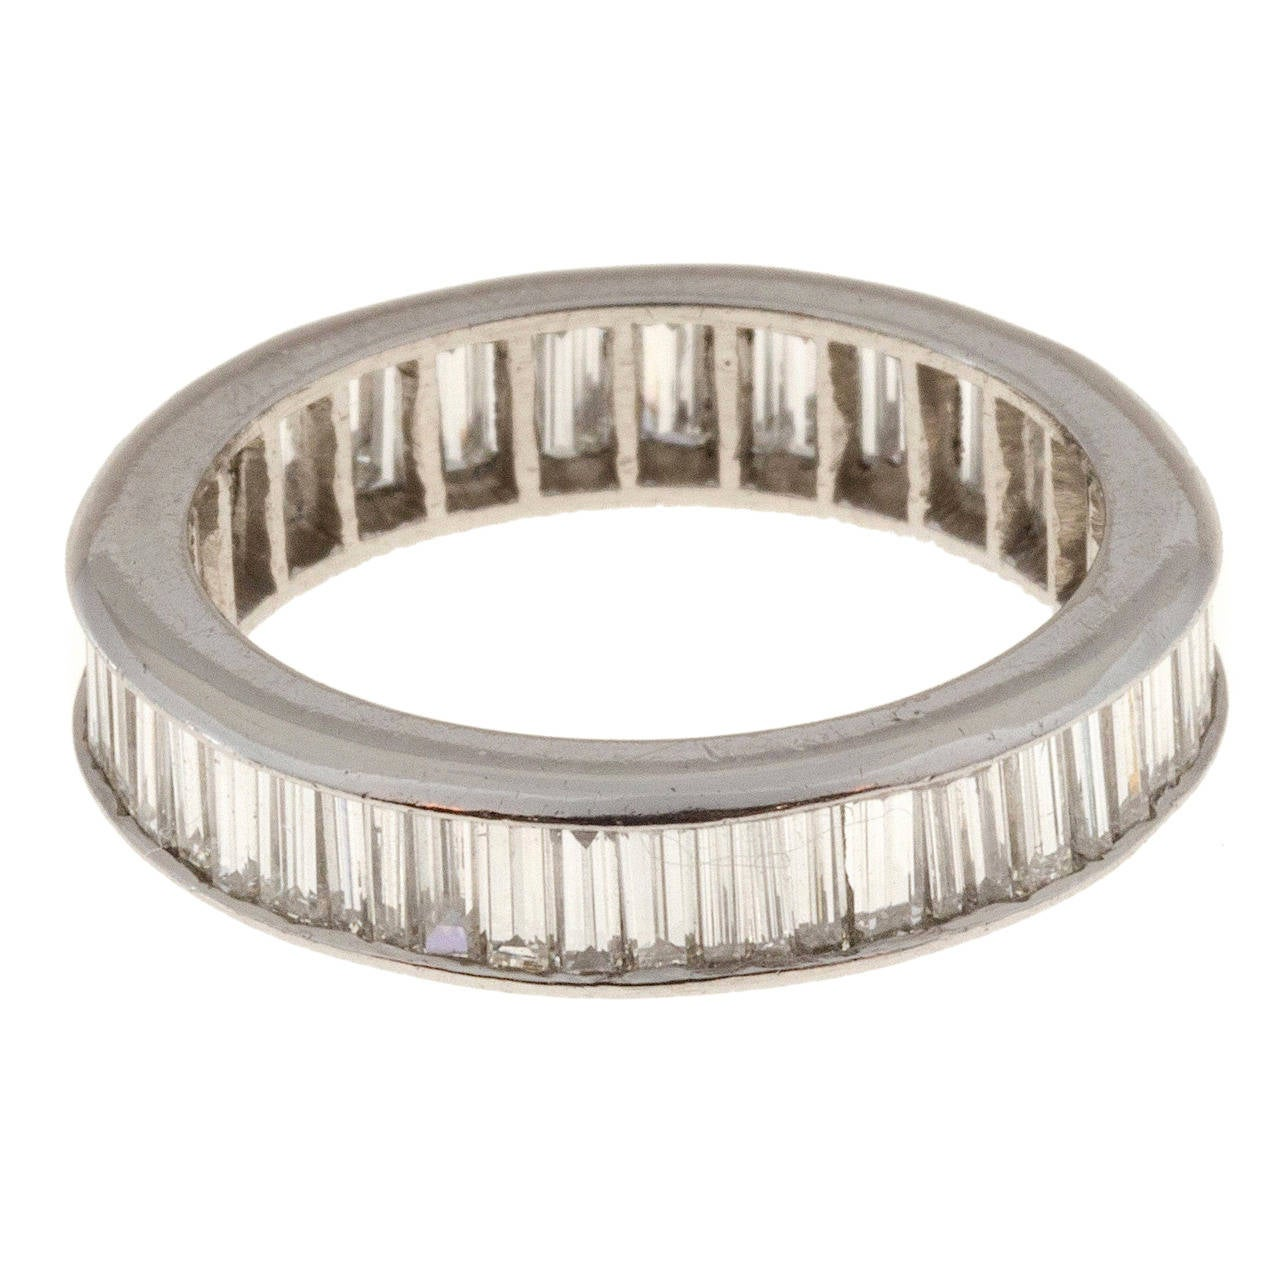 Peter Suchy Design Baguette Diamond Platinum Ring Band